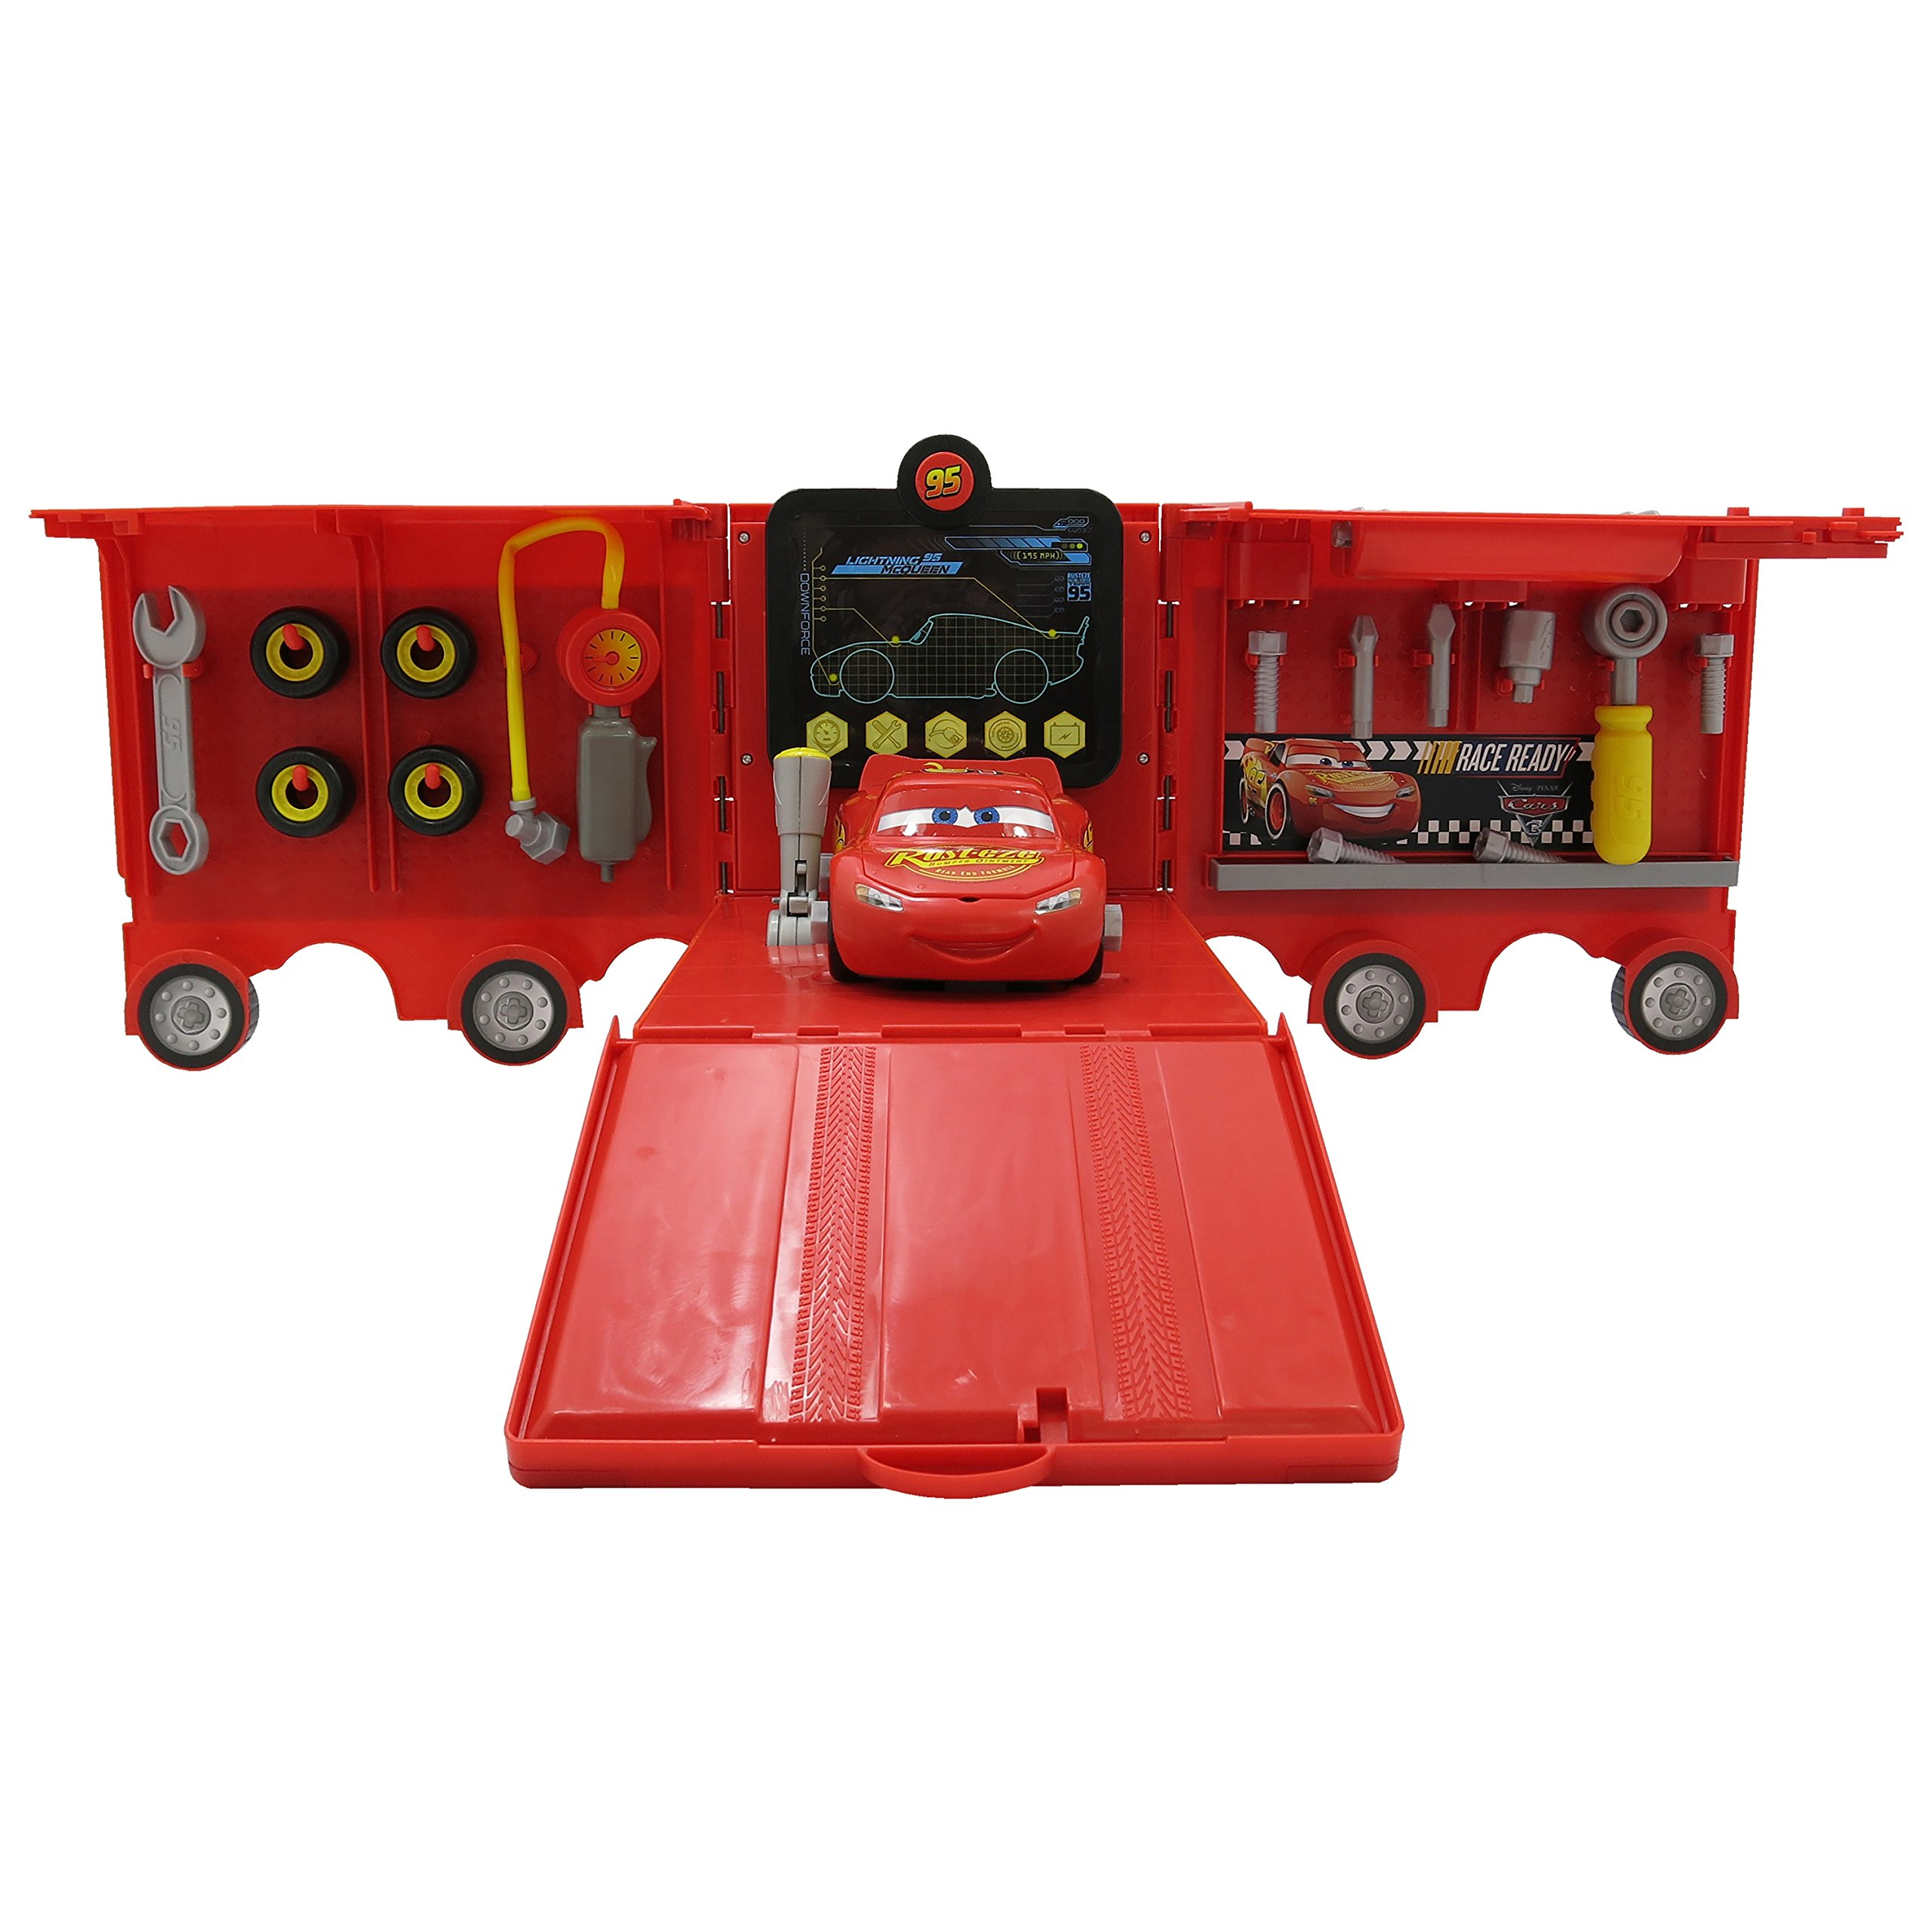 Cars 3 Macks Mobile Tool Center by Cars 3 (Image #6)